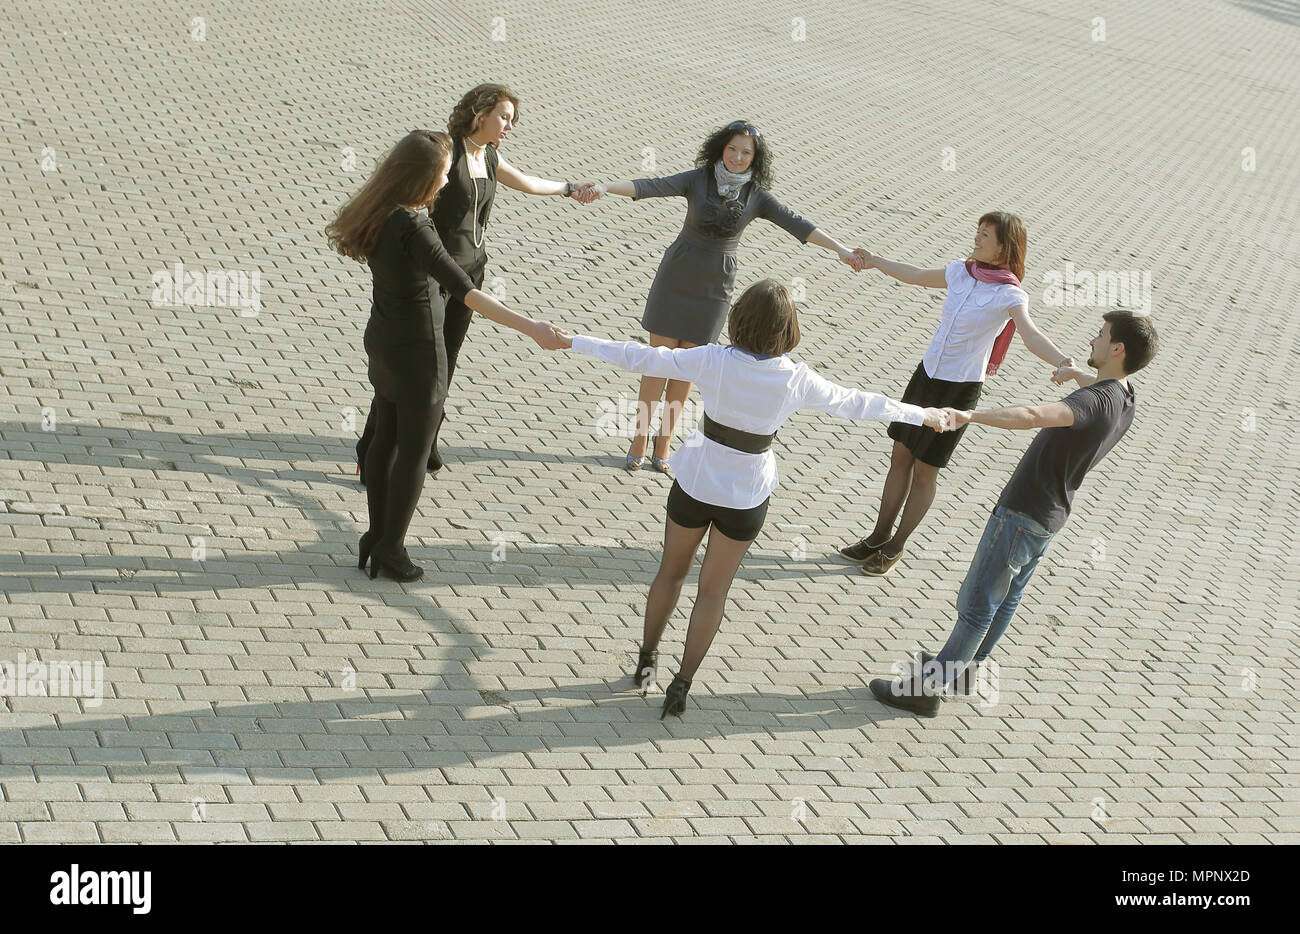 friendly group of students taking each other's hands. - Stock Image